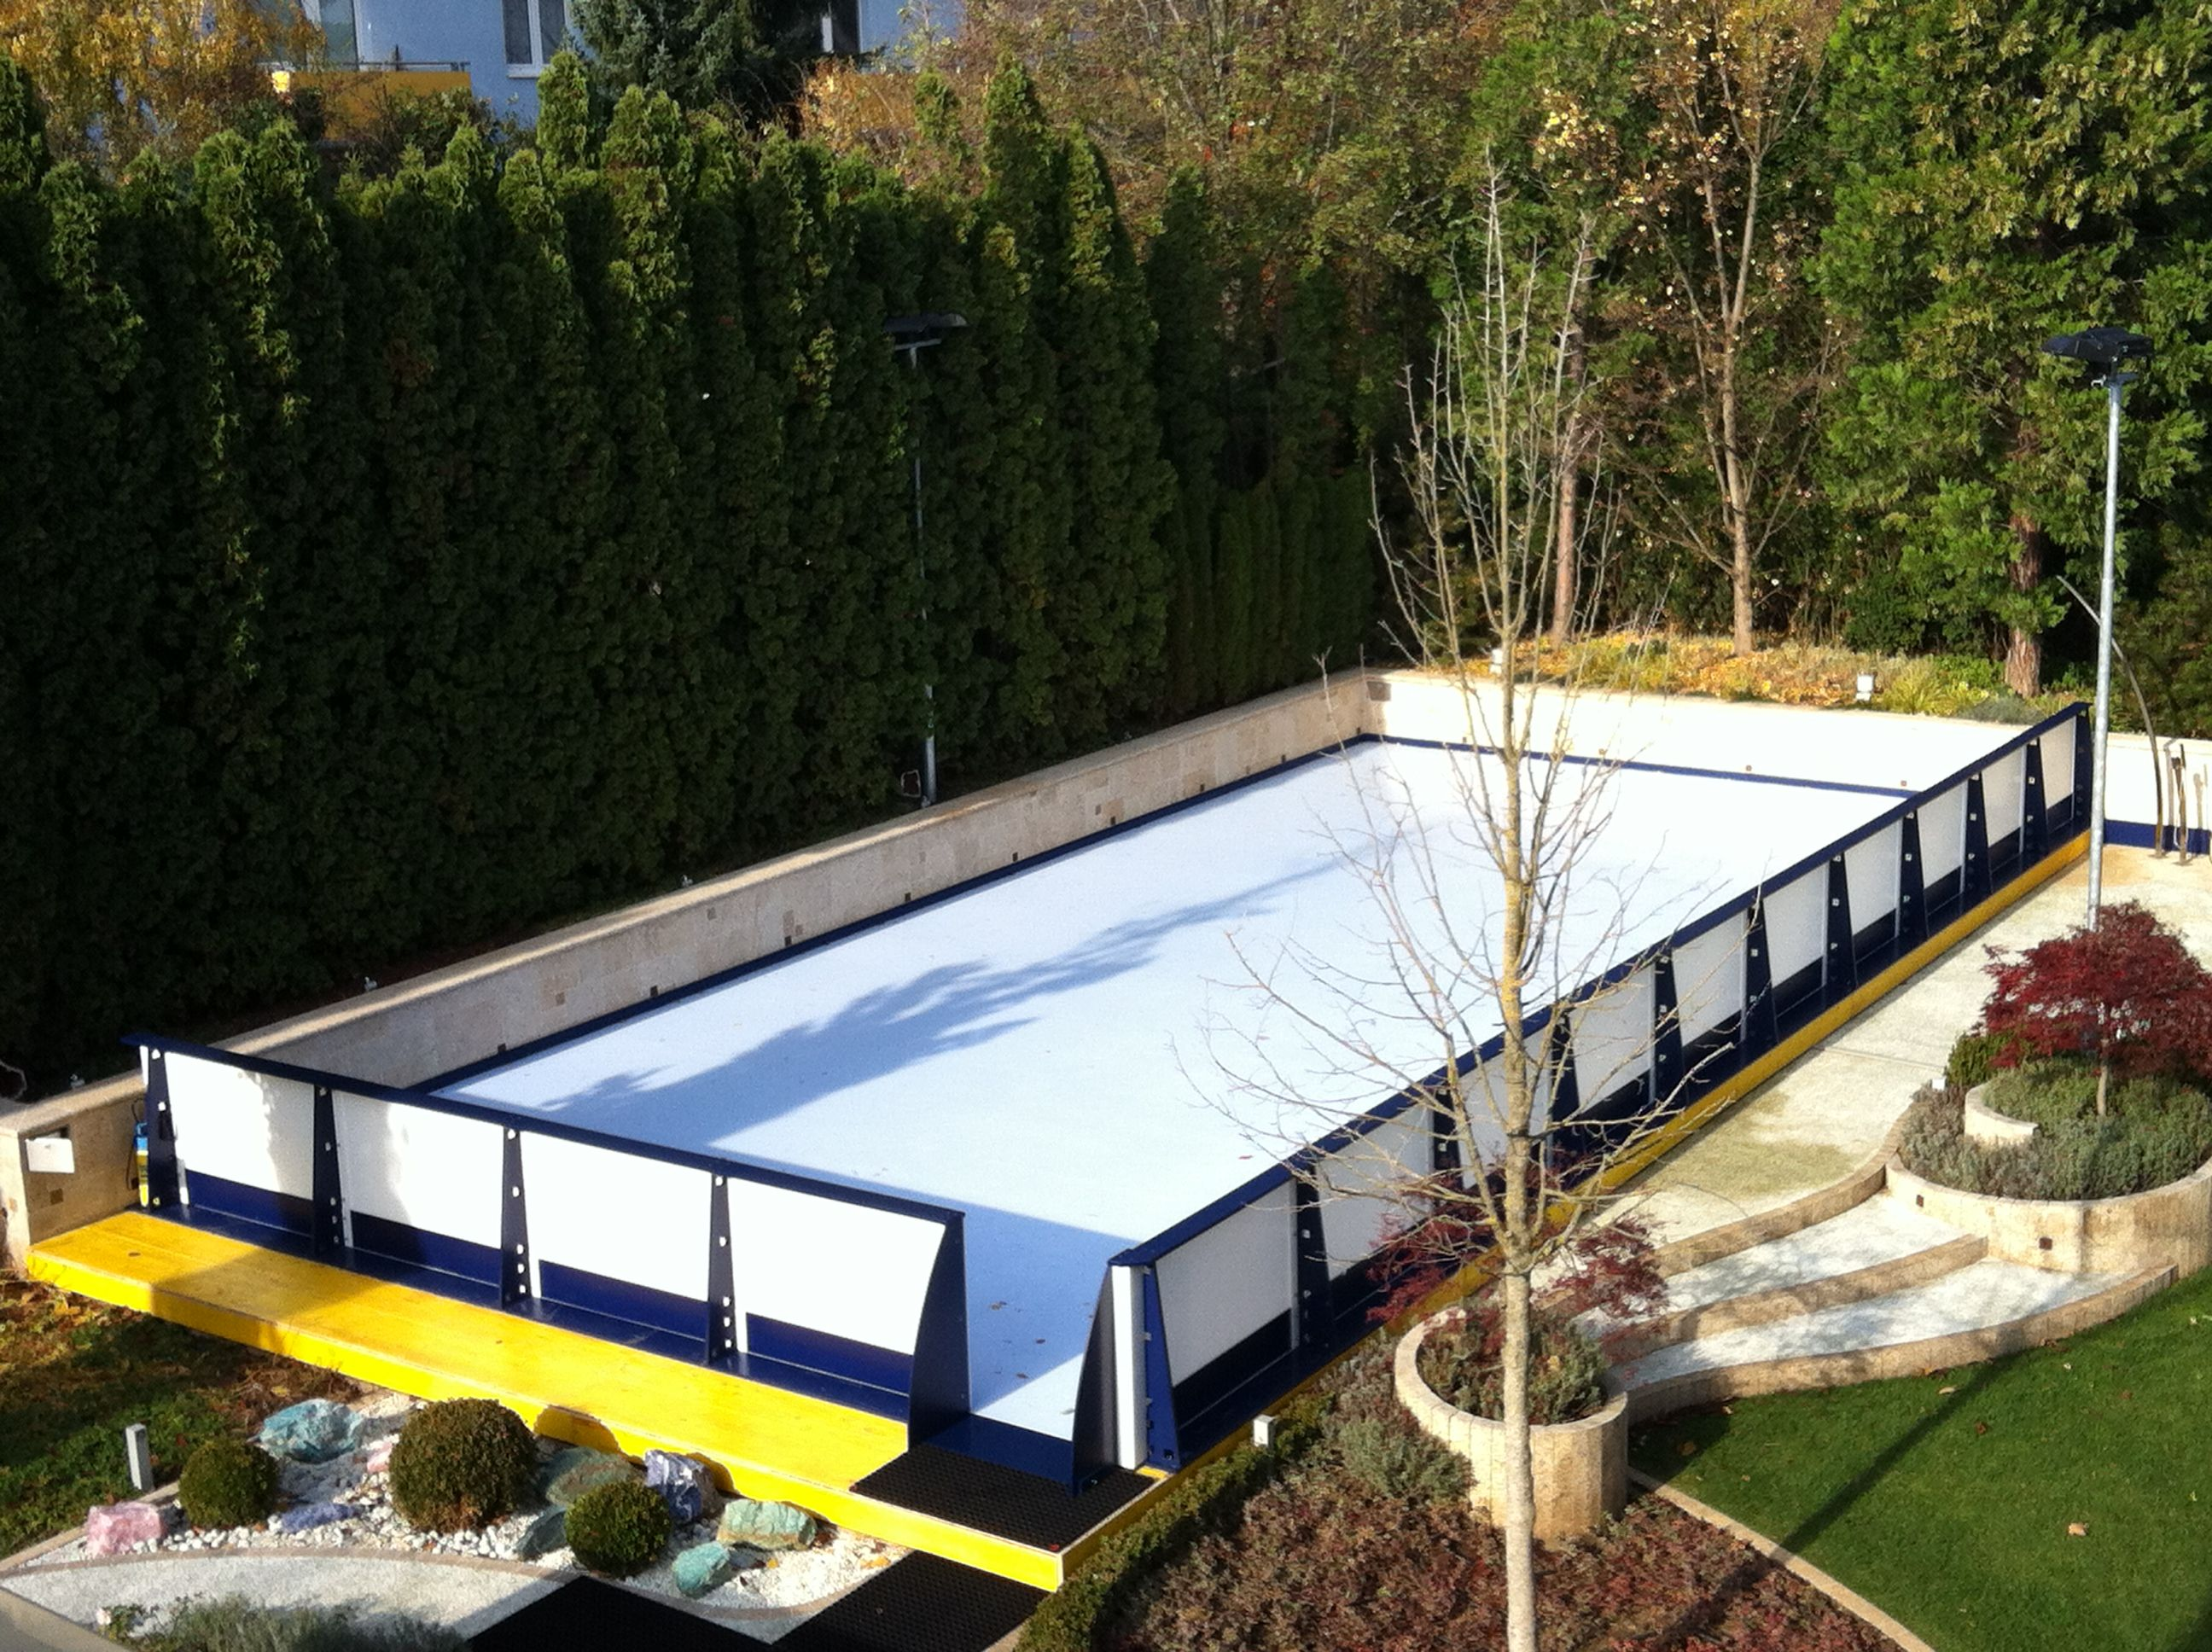 Backyard Synthetic Ice Rink Built Over A Pool In Vienna